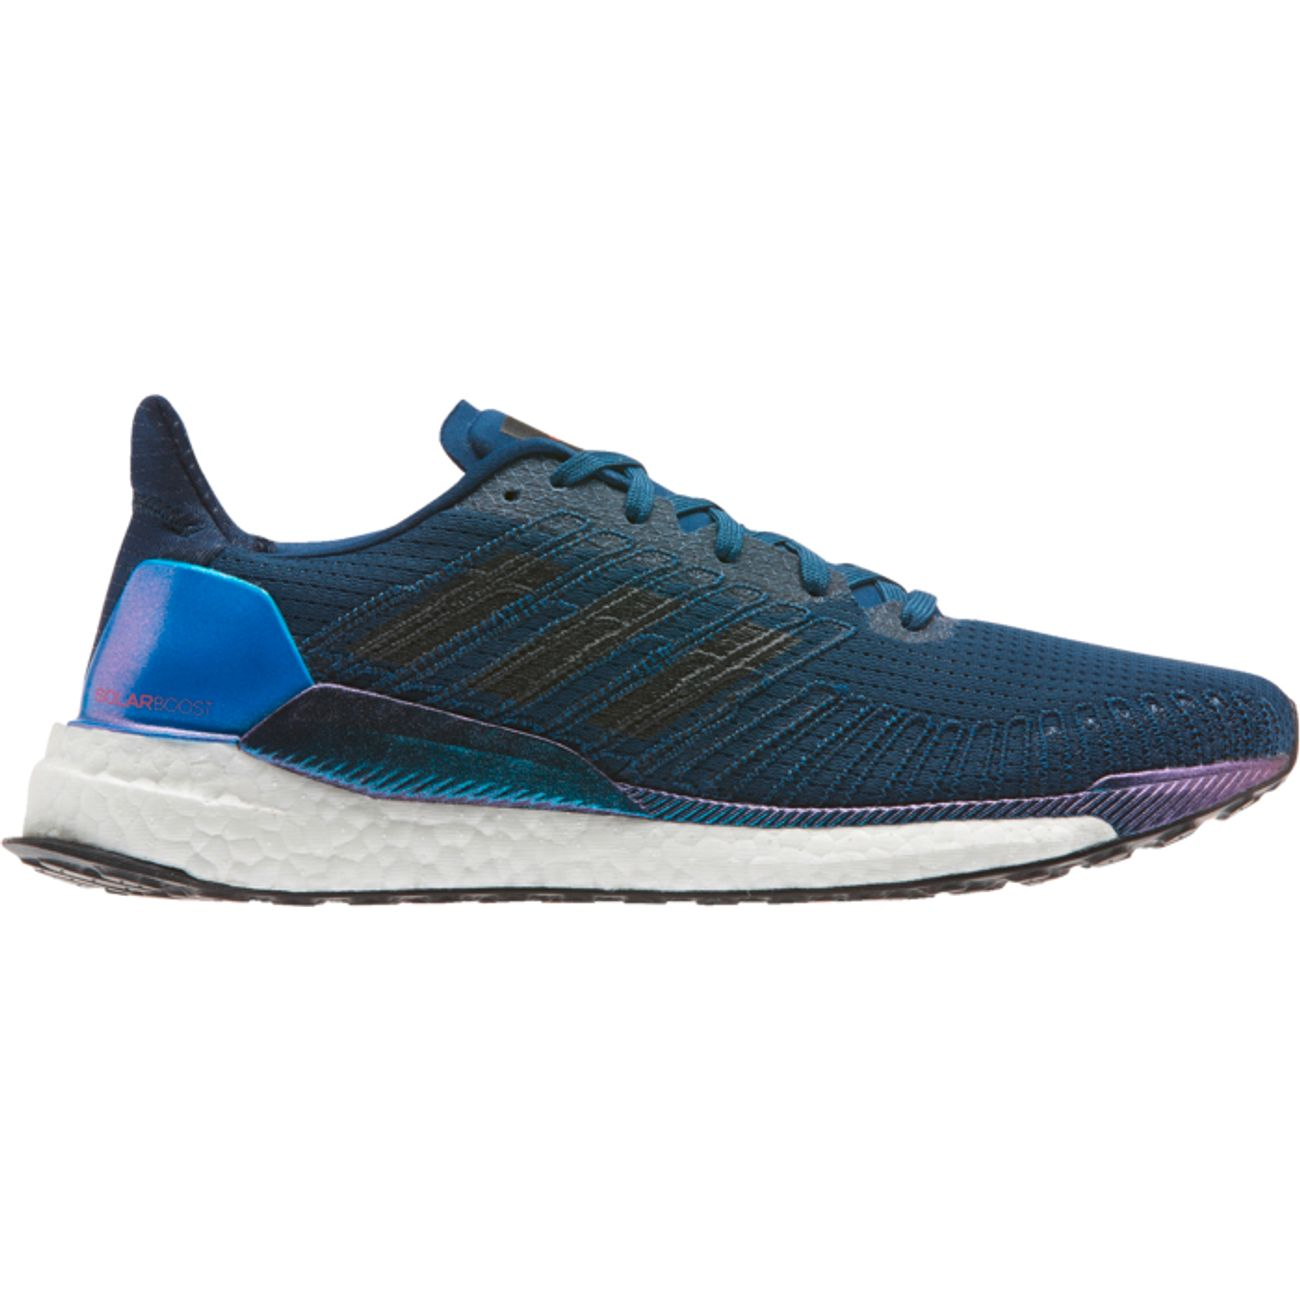 CHAUSSURES BASSES running homme ADIDAS SOLAR BOOST 19